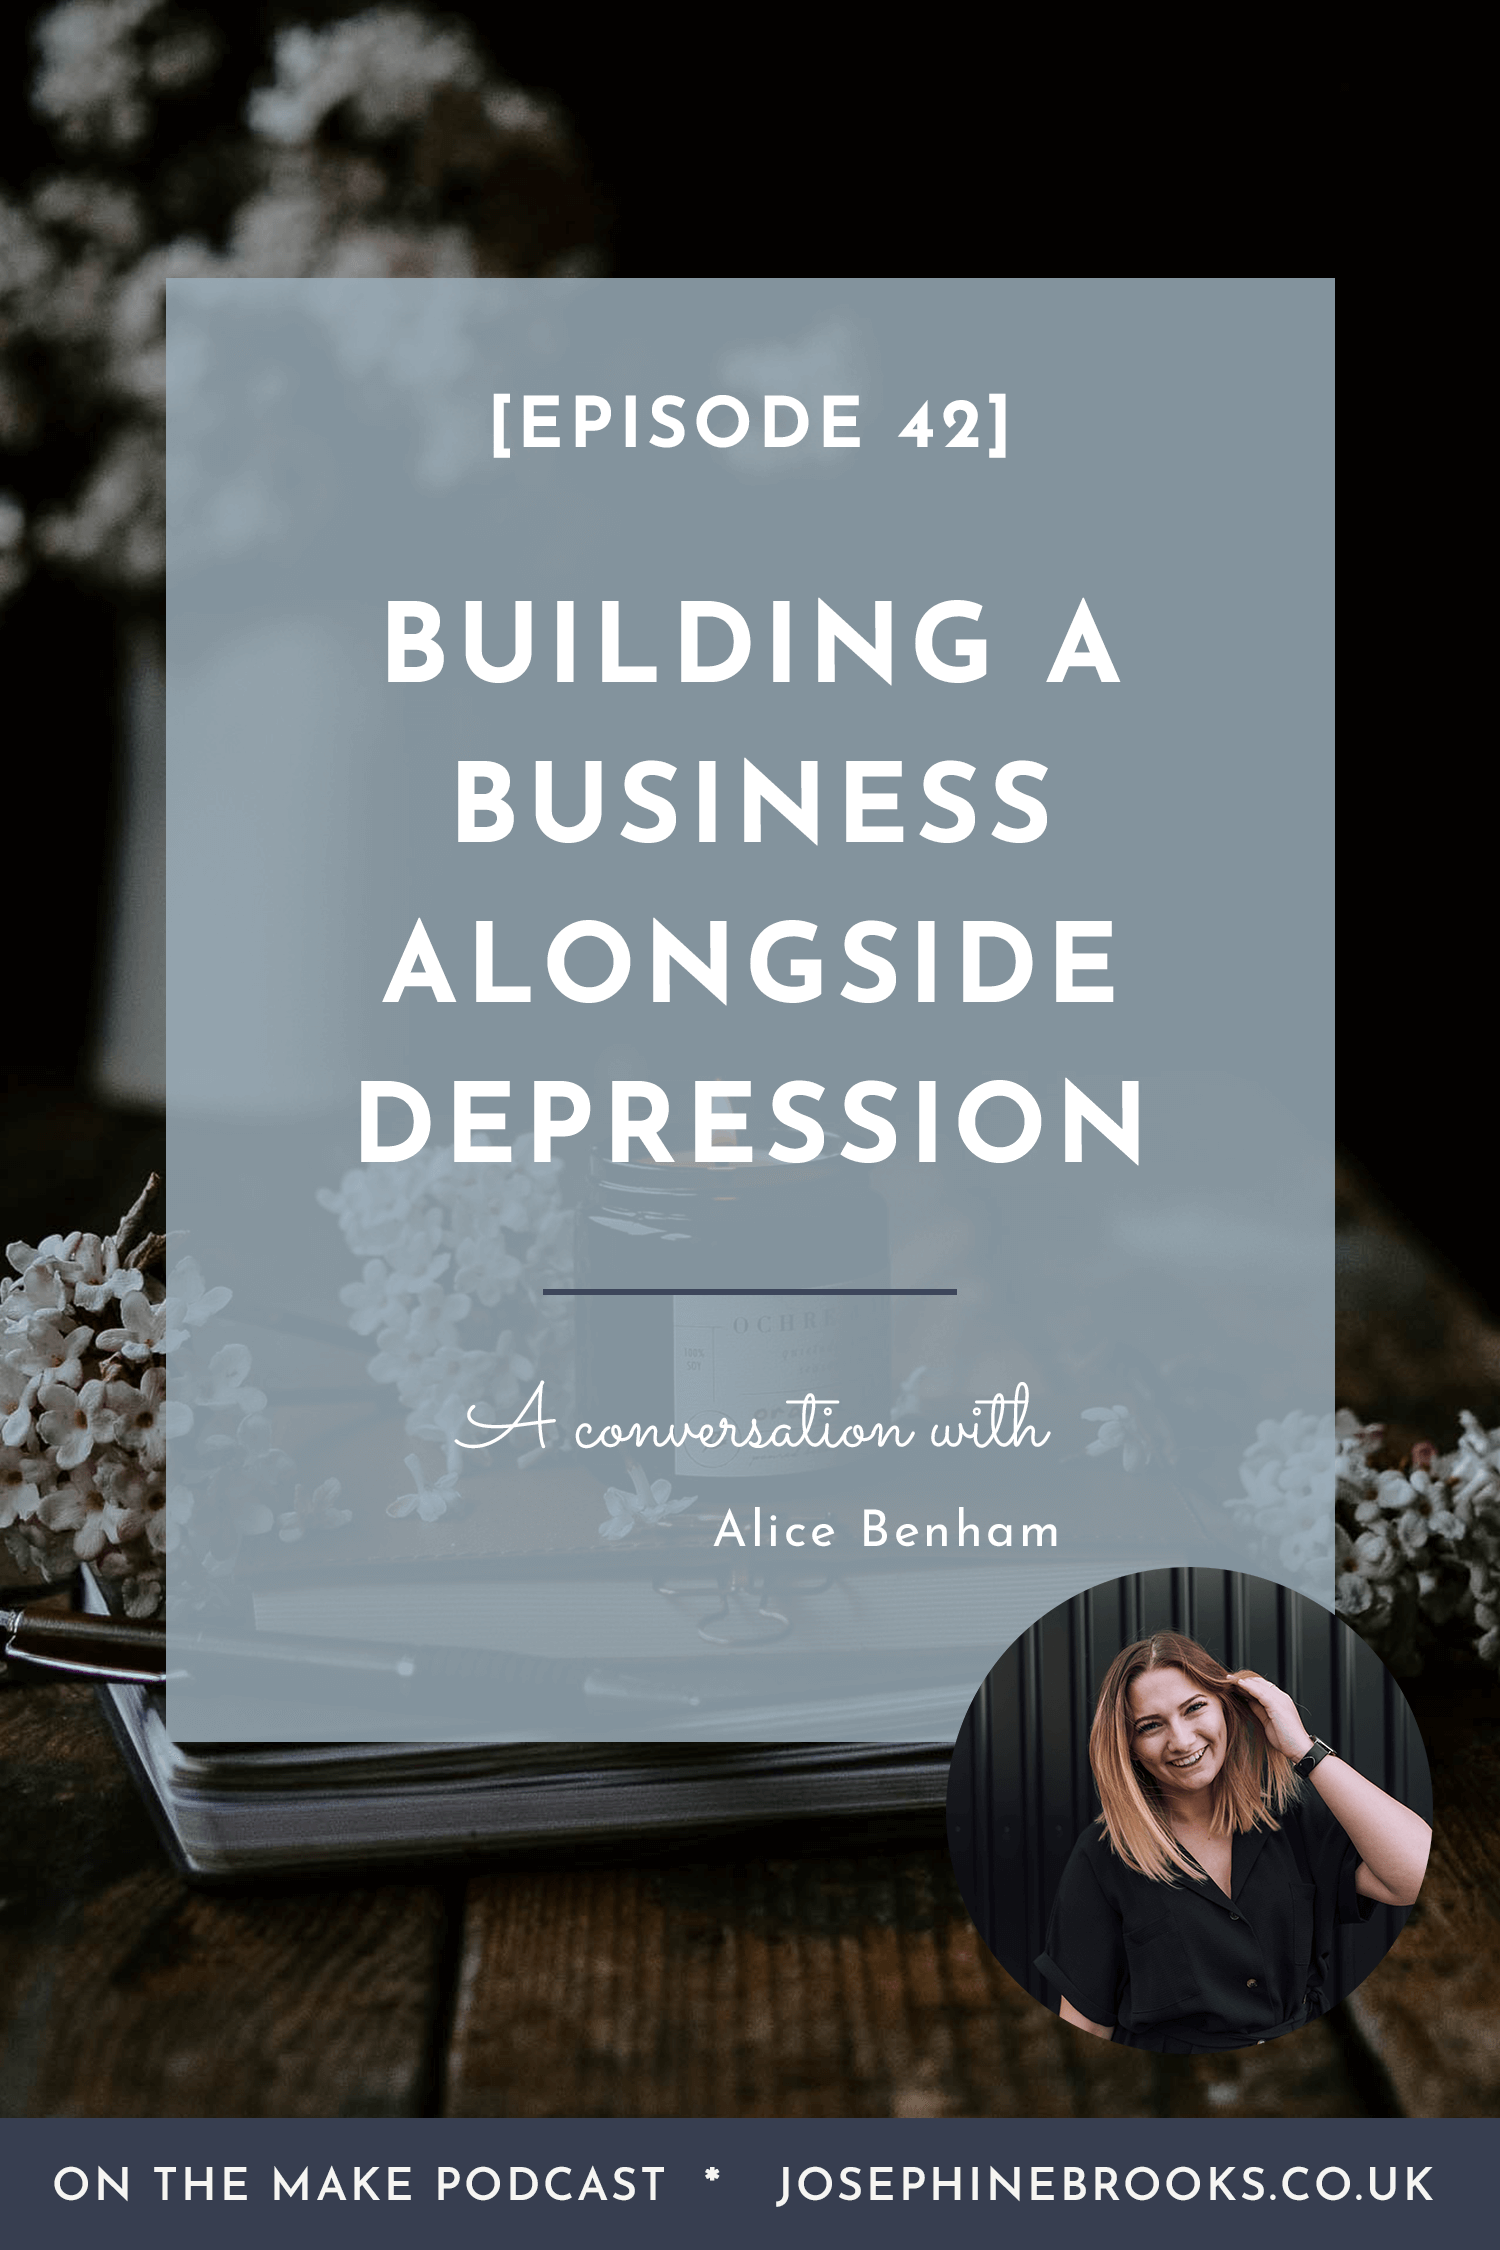 Building a business alongside depression, an interview with Alice Benham in Honour of Mental Health Awareness Week - Episode 42 - On The Make Podcast hosted by Josephine Brooks